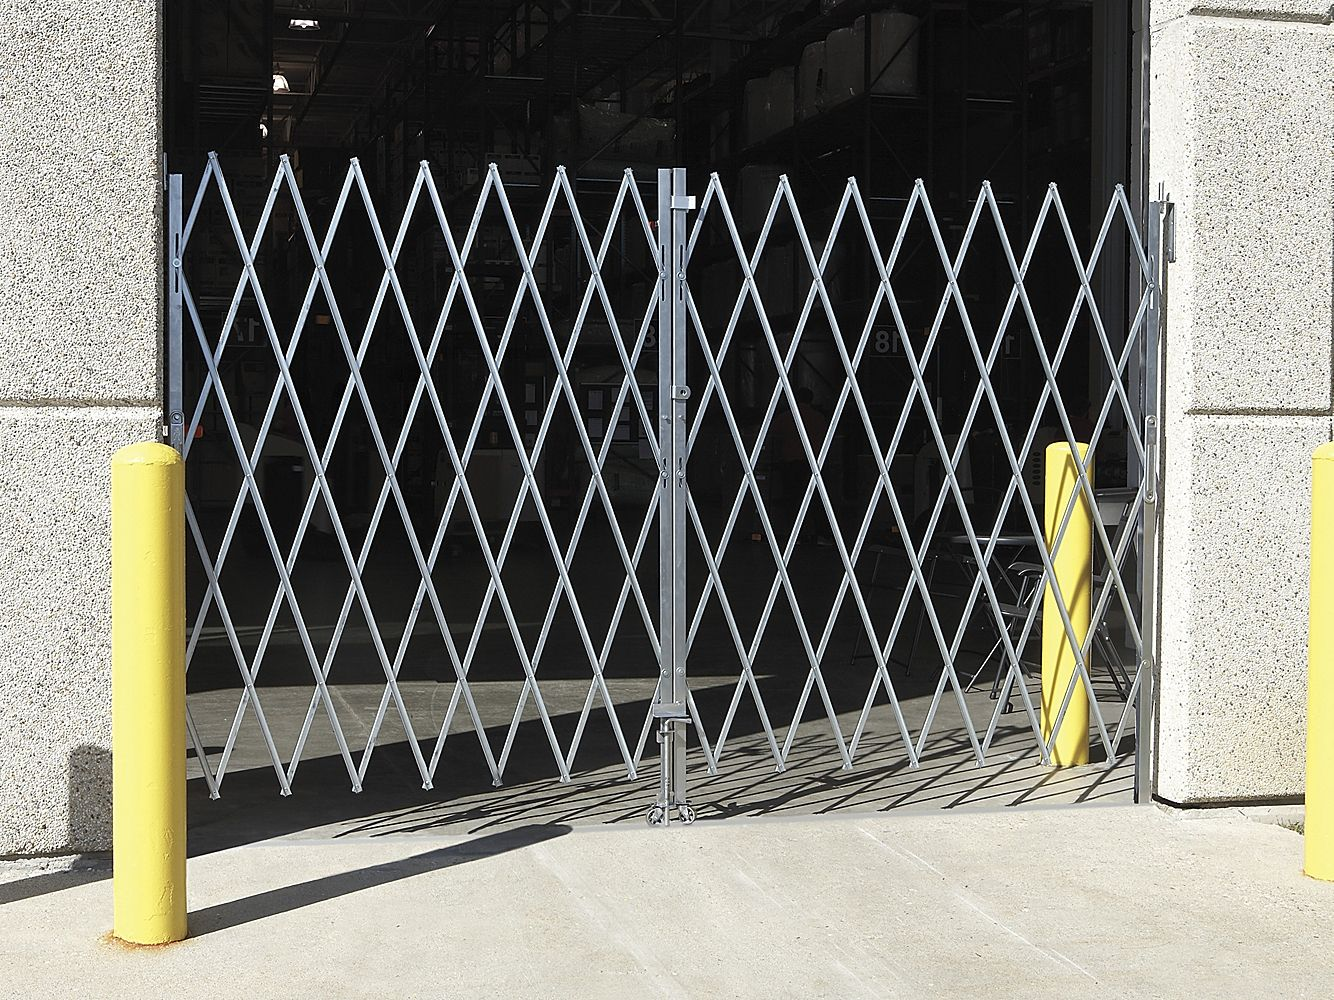 Folding Security Gate 10 12 X 6 H 2829 Uline Security Gates Steel Garage Doors Garage Door Security